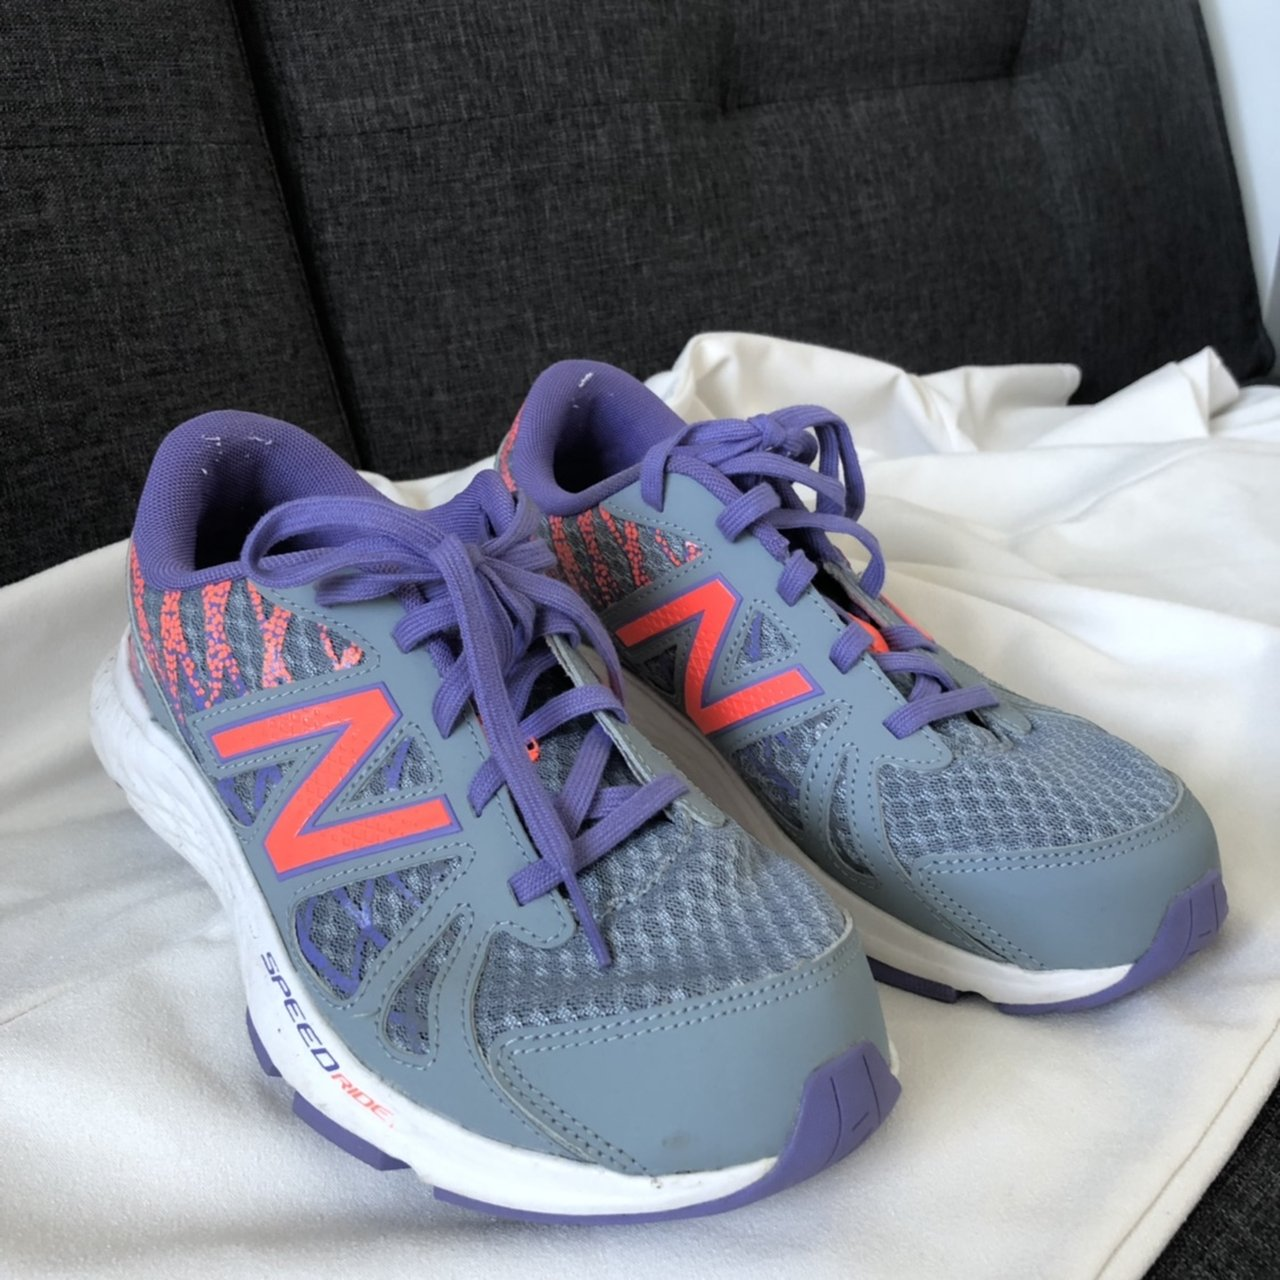 9a8c5460c4293 @chloehaf26. yesterday. Ellesmere Port, United Kingdom. New balance size 5  running trainers